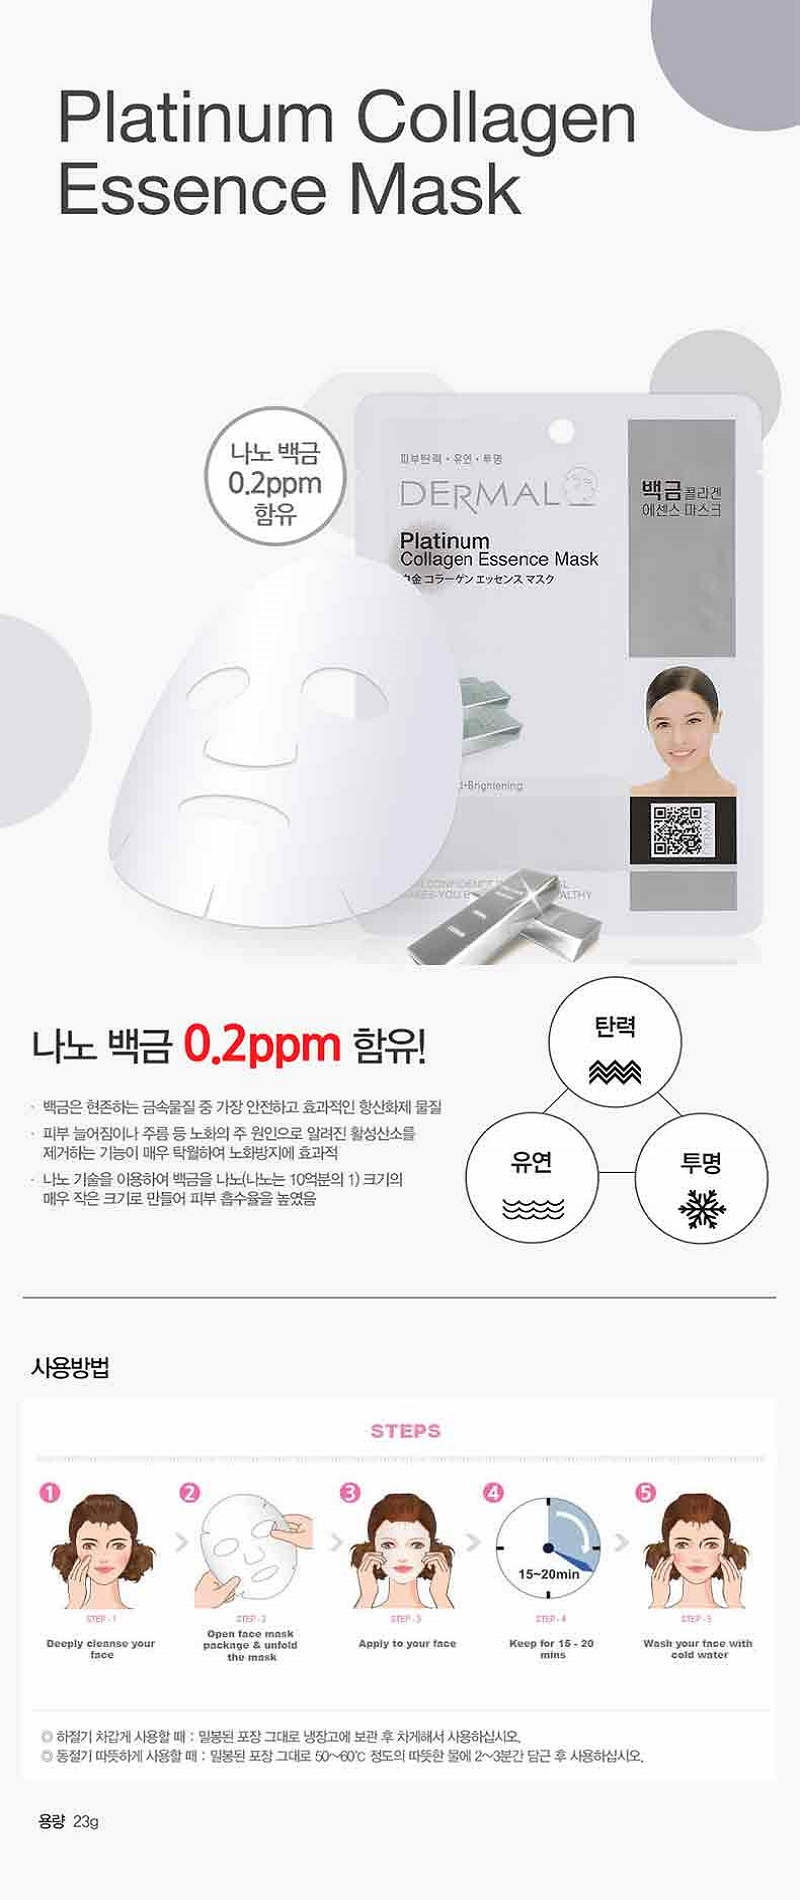 Dermal Platinum Collagen Essence Full Face Sheet Mask